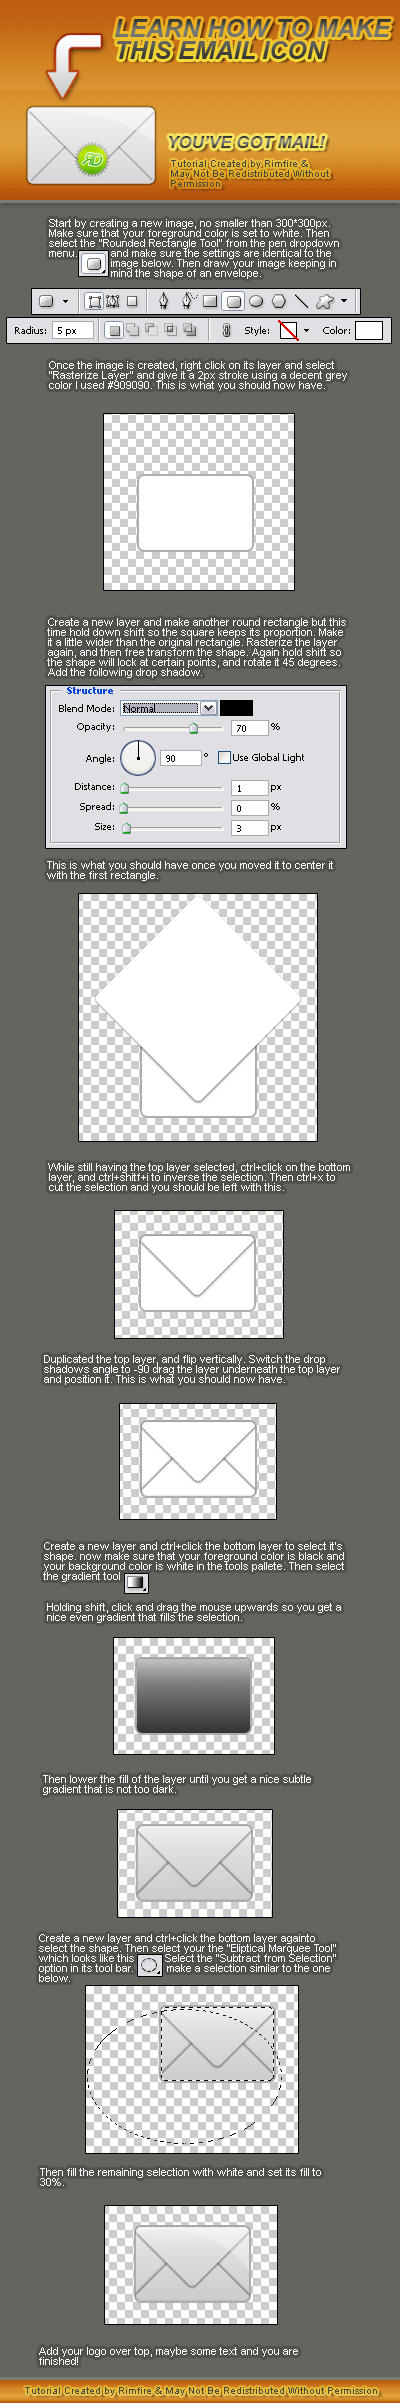 Email Icon Tutorial by RIM-FIRE